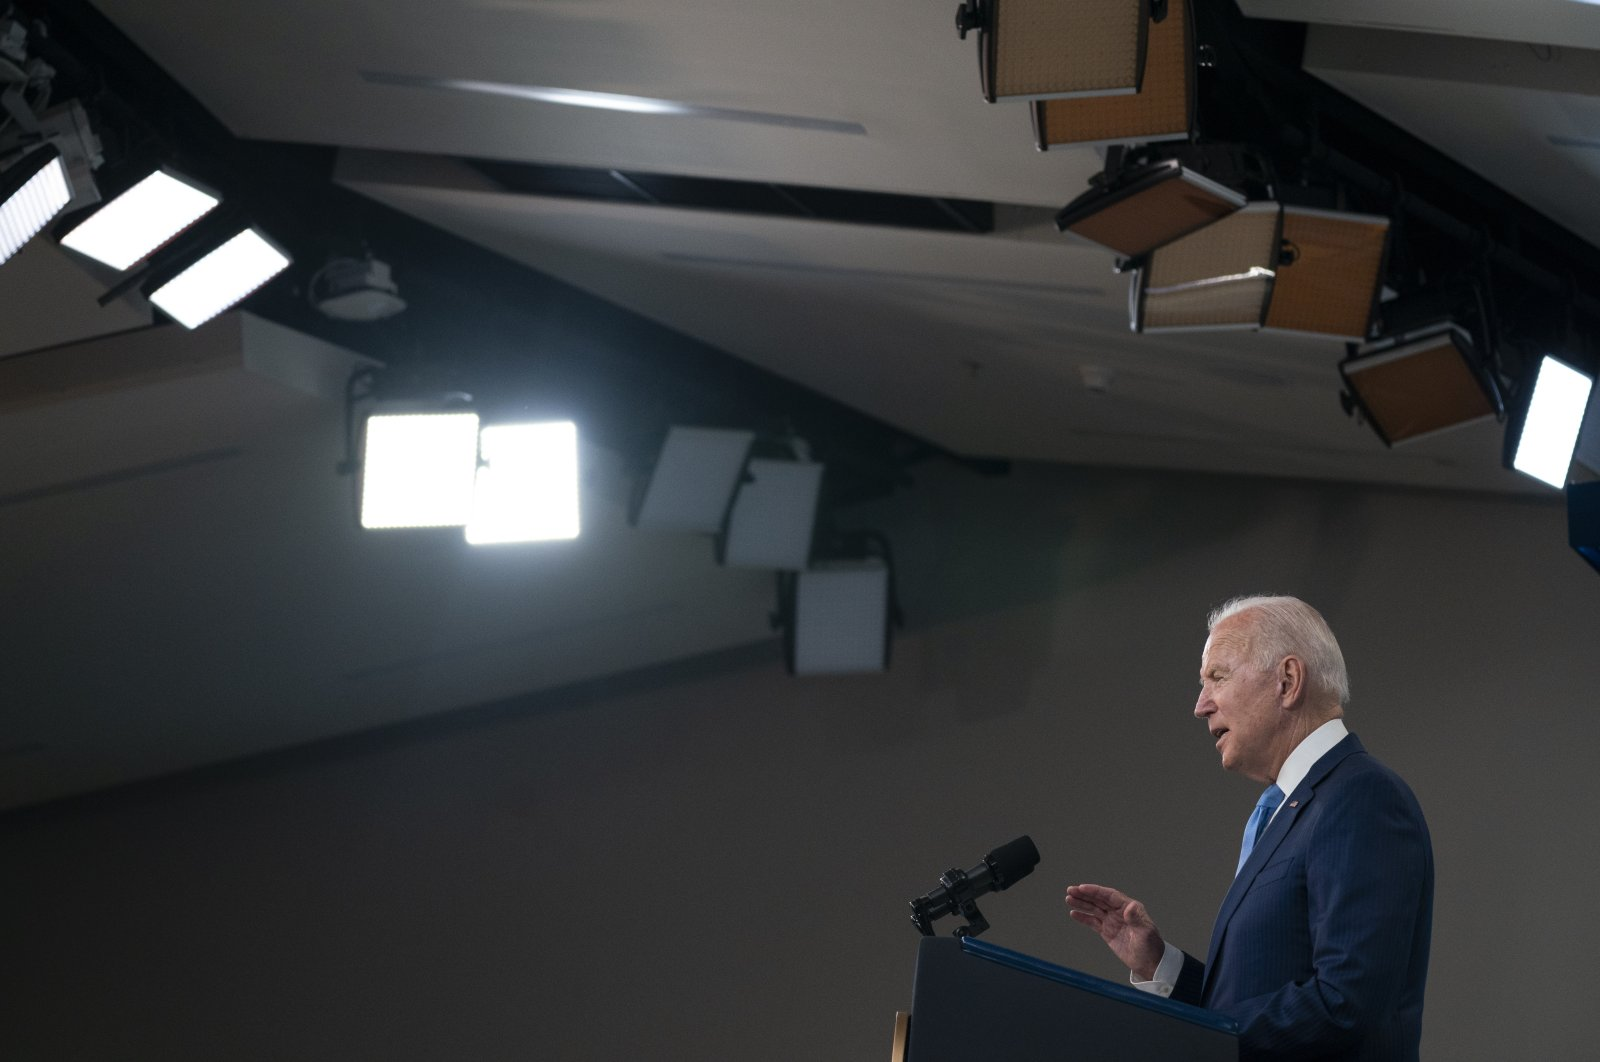 U.S. President Joe Biden delivers remarks on the full FDA approval of the Pfizer-BioNTech coronavirus vaccine, in the South Court Auditorium on the White House campus, Washington D.C., Aug. 23, 2021. (AP Photo)